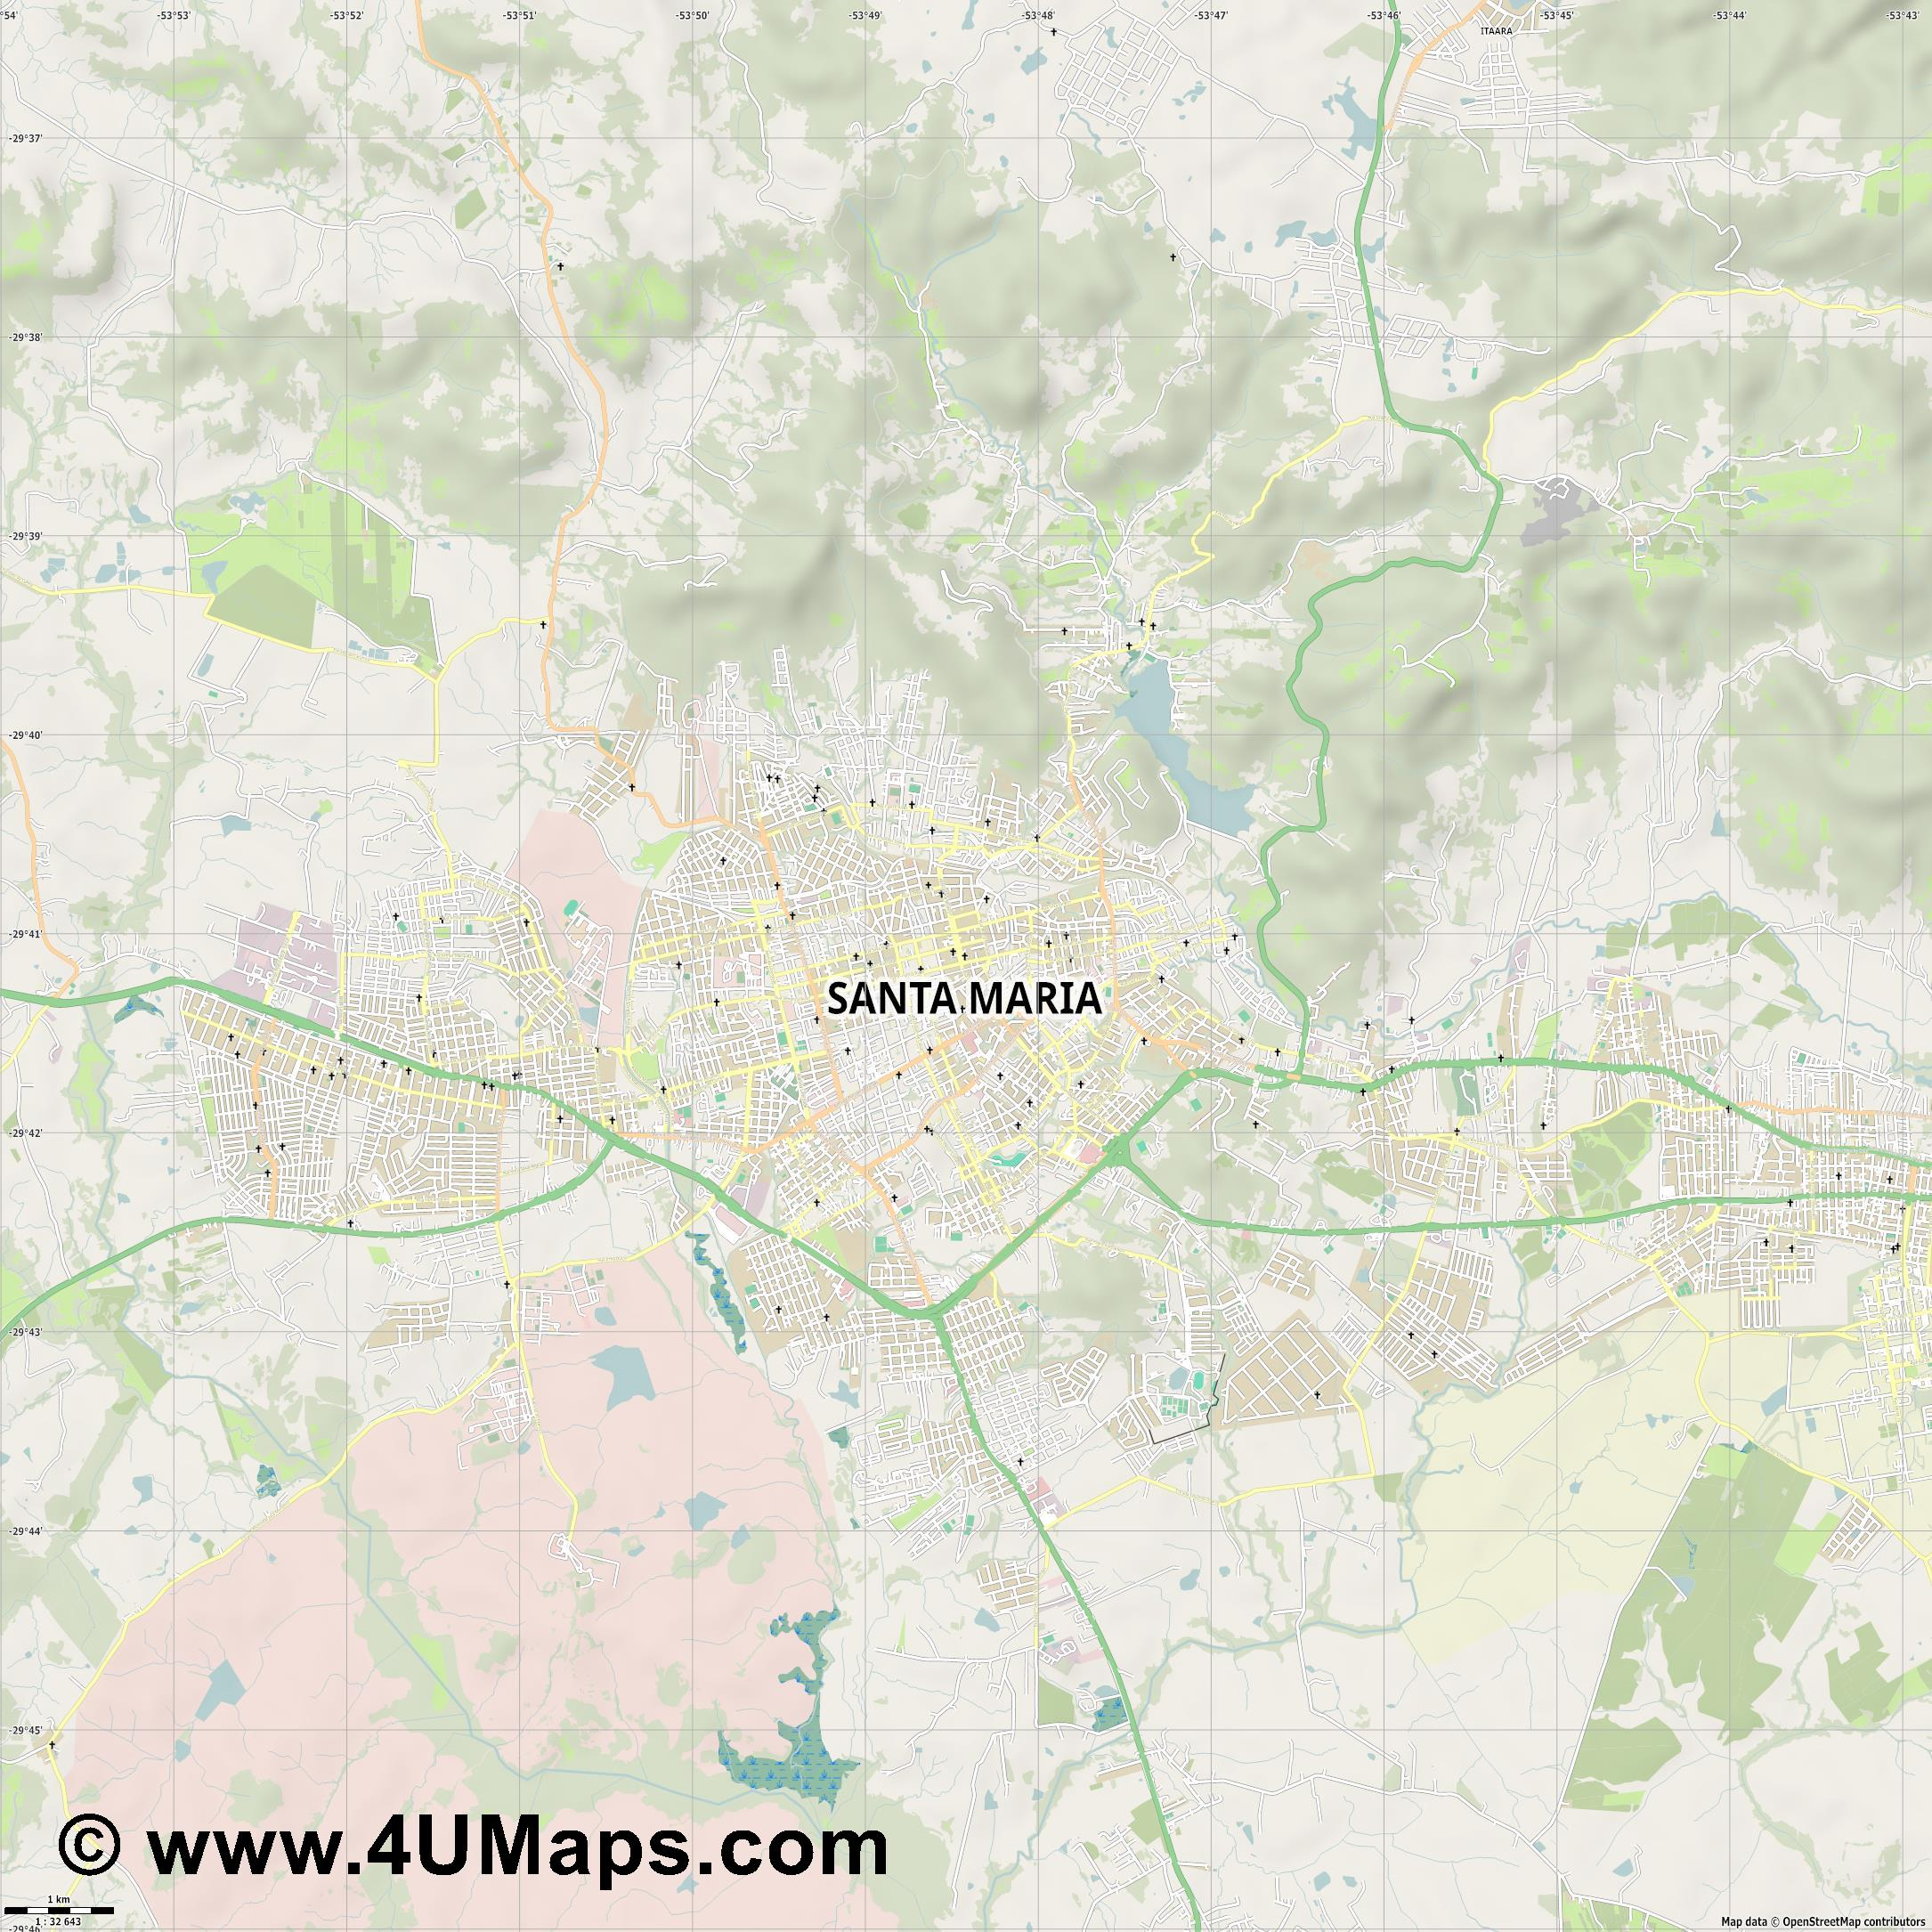 Santa Maria  jpg high detail, large area preview vector city map